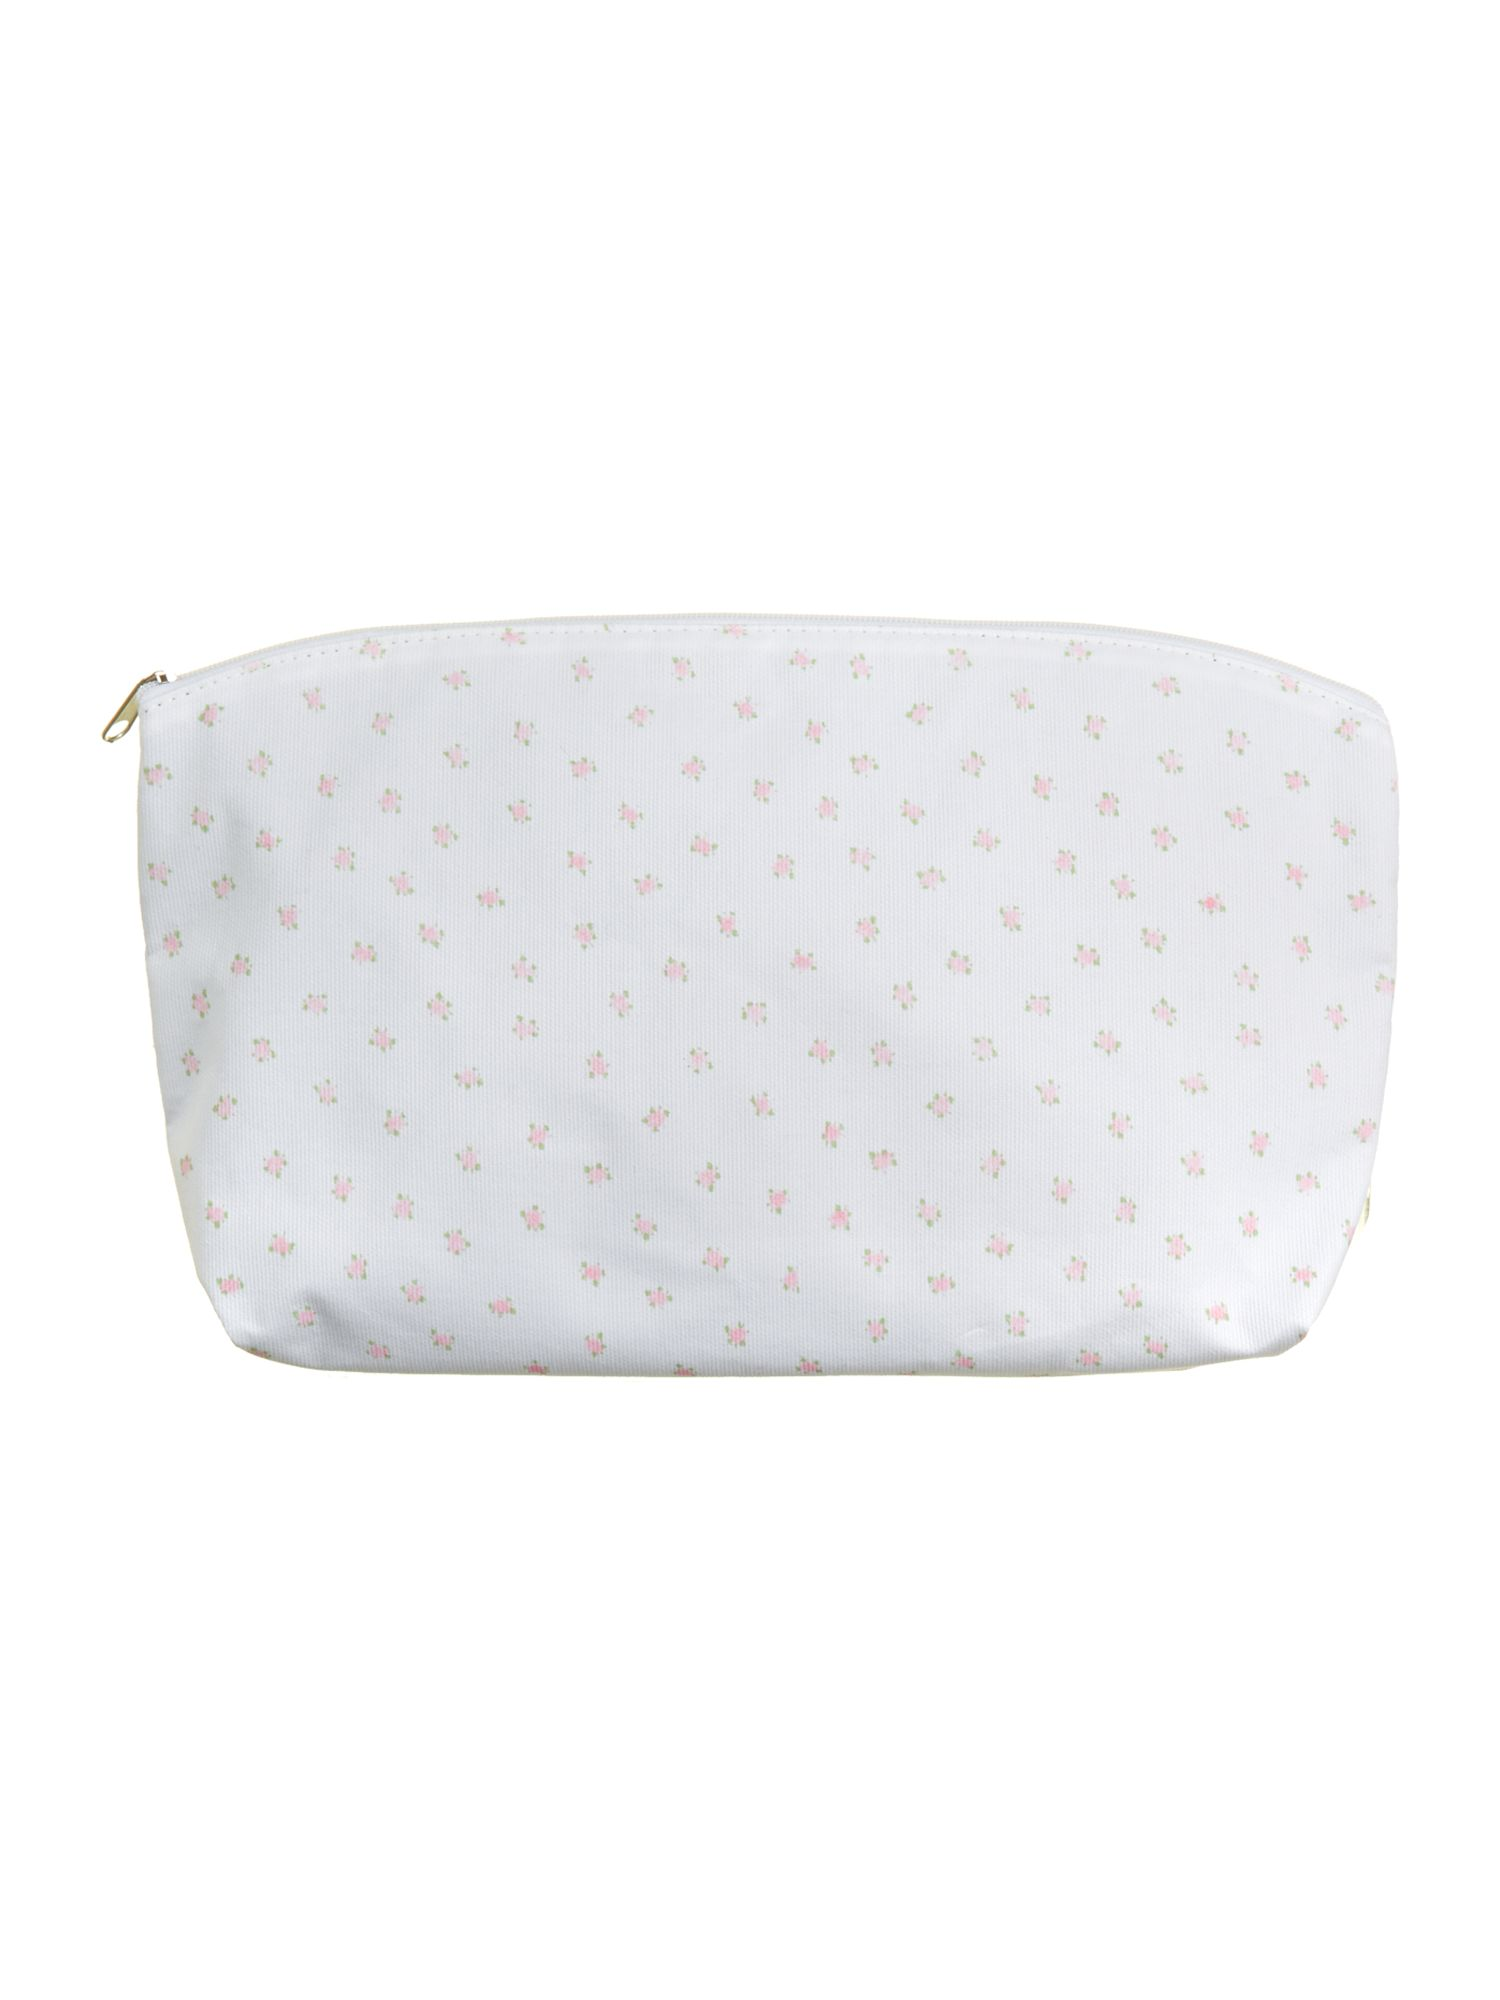 Pretty ditsy floral wash bag